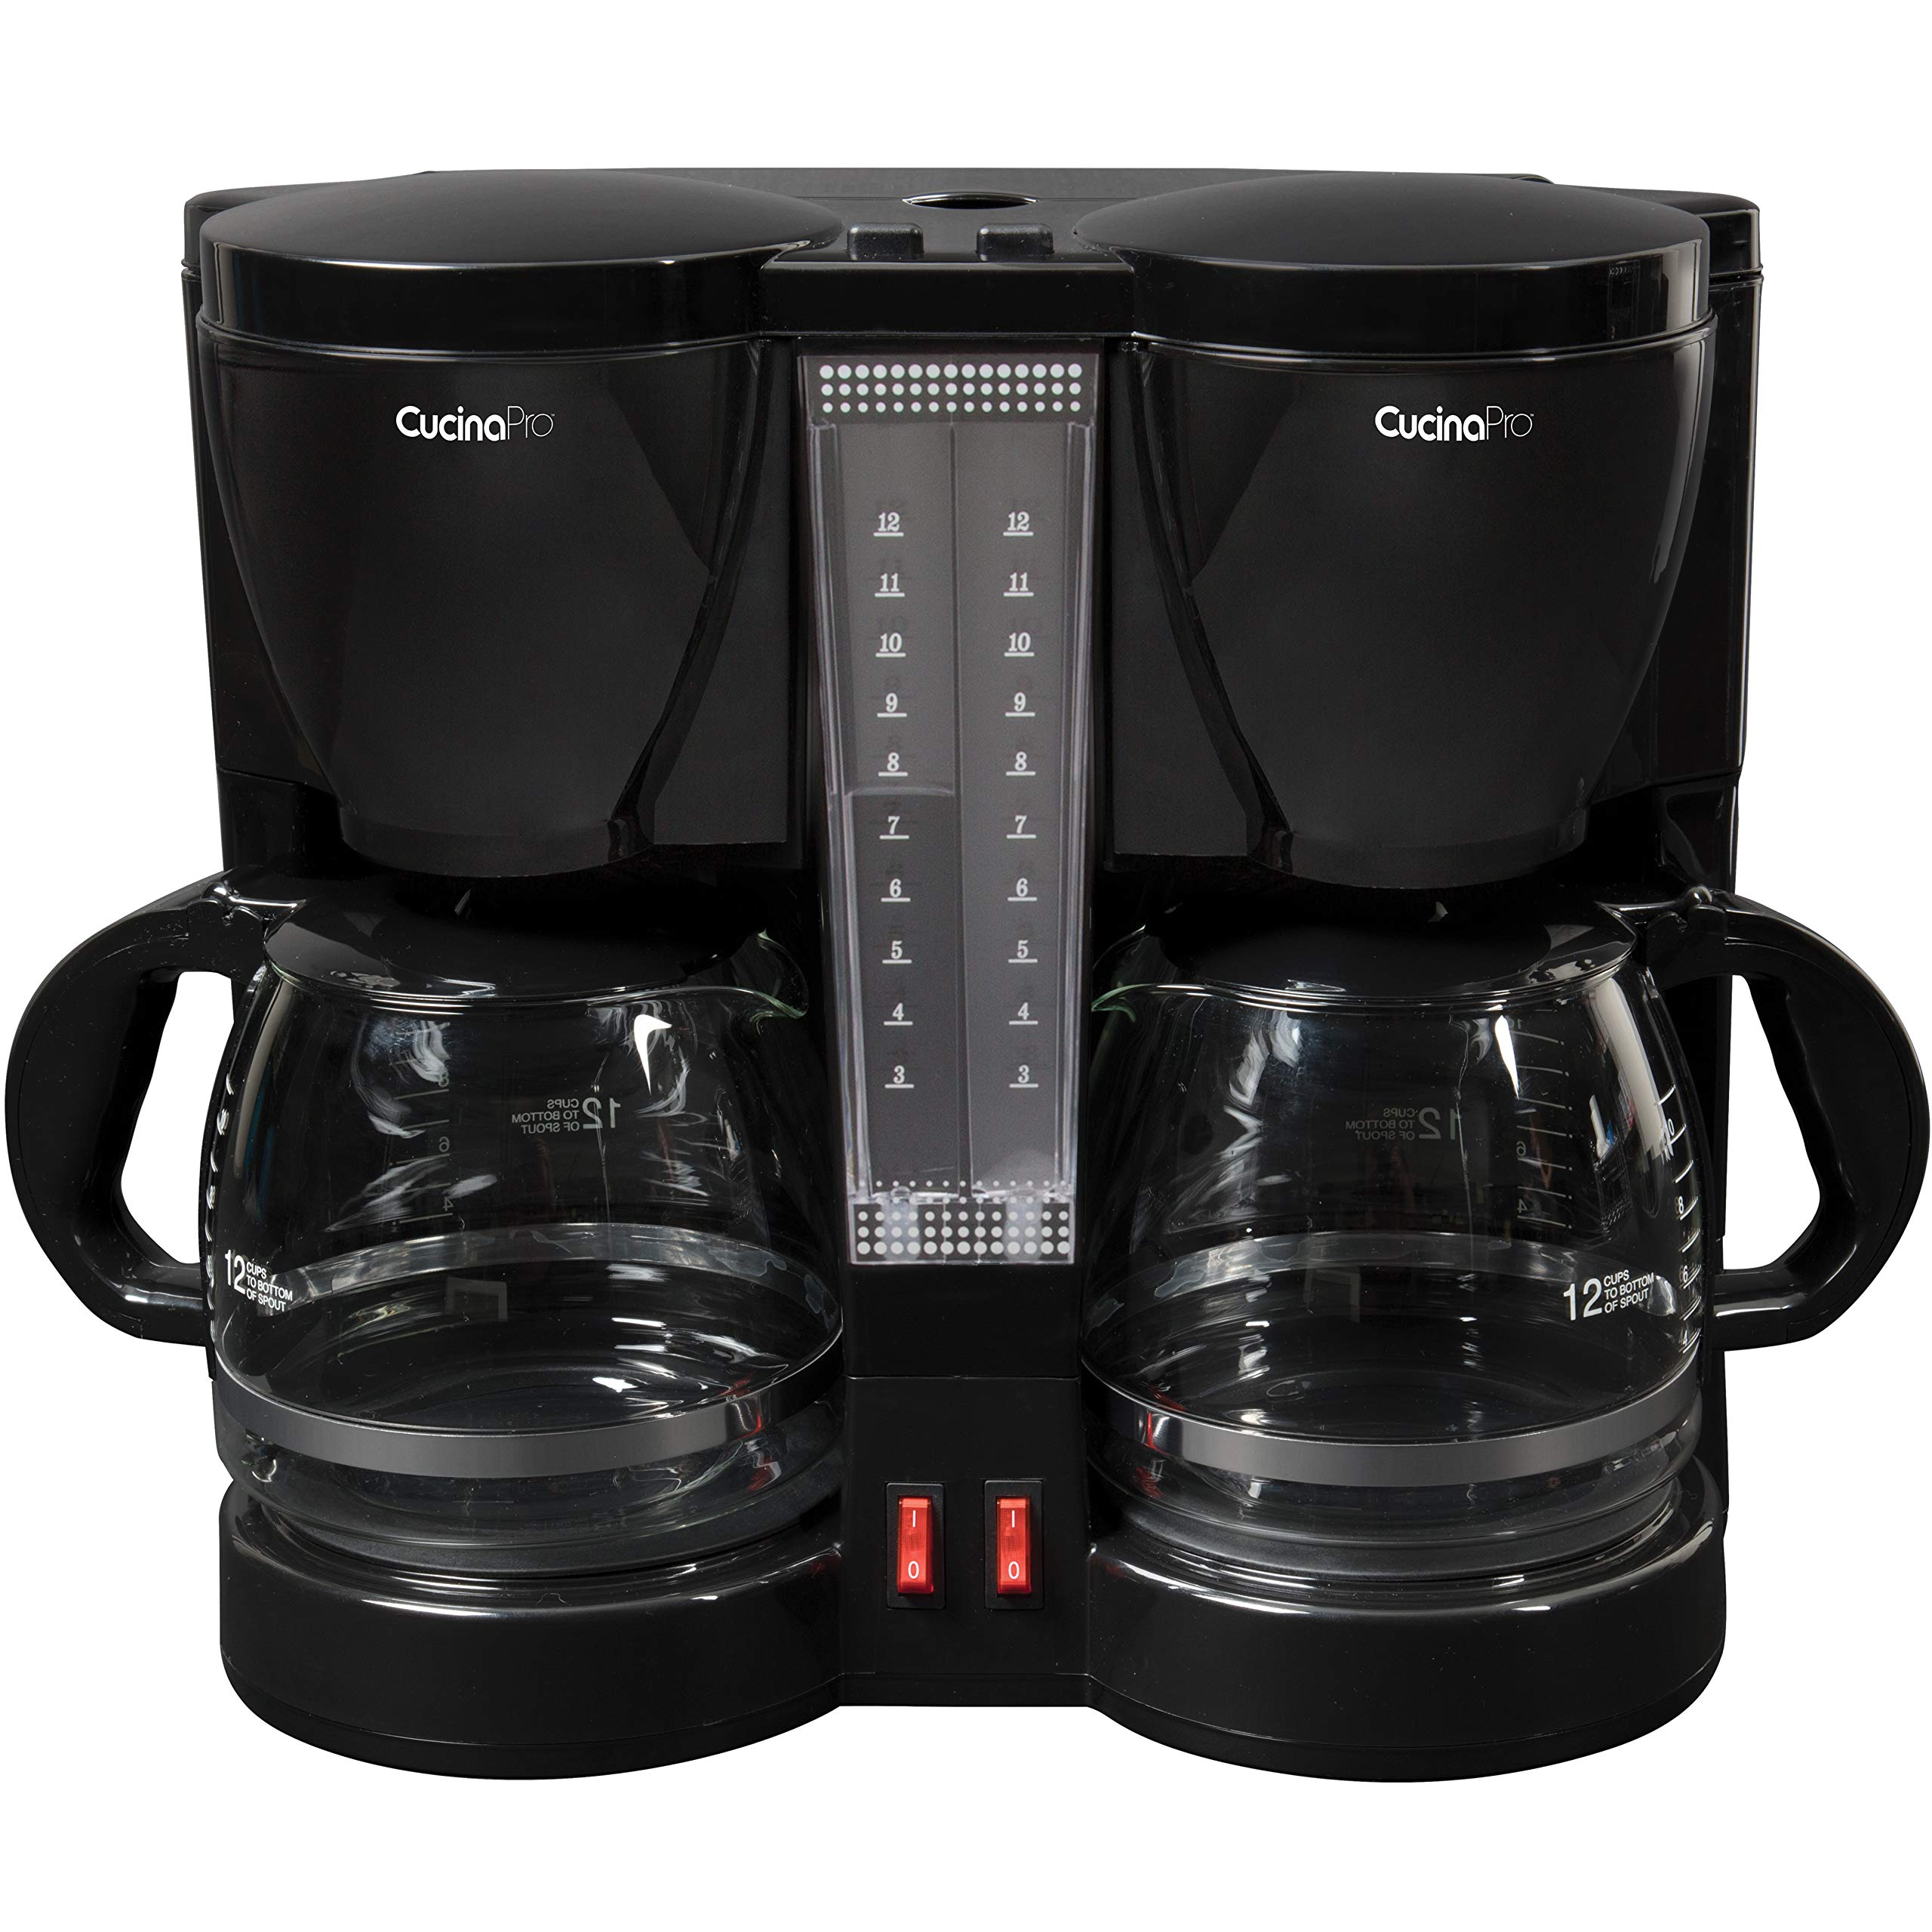 CucinaPro Double Coffee Brewer Station - Dual Coffee Maker Brews two 12-cup Pots, each with Individual Heating Elements by CucinaPro (Image #4)